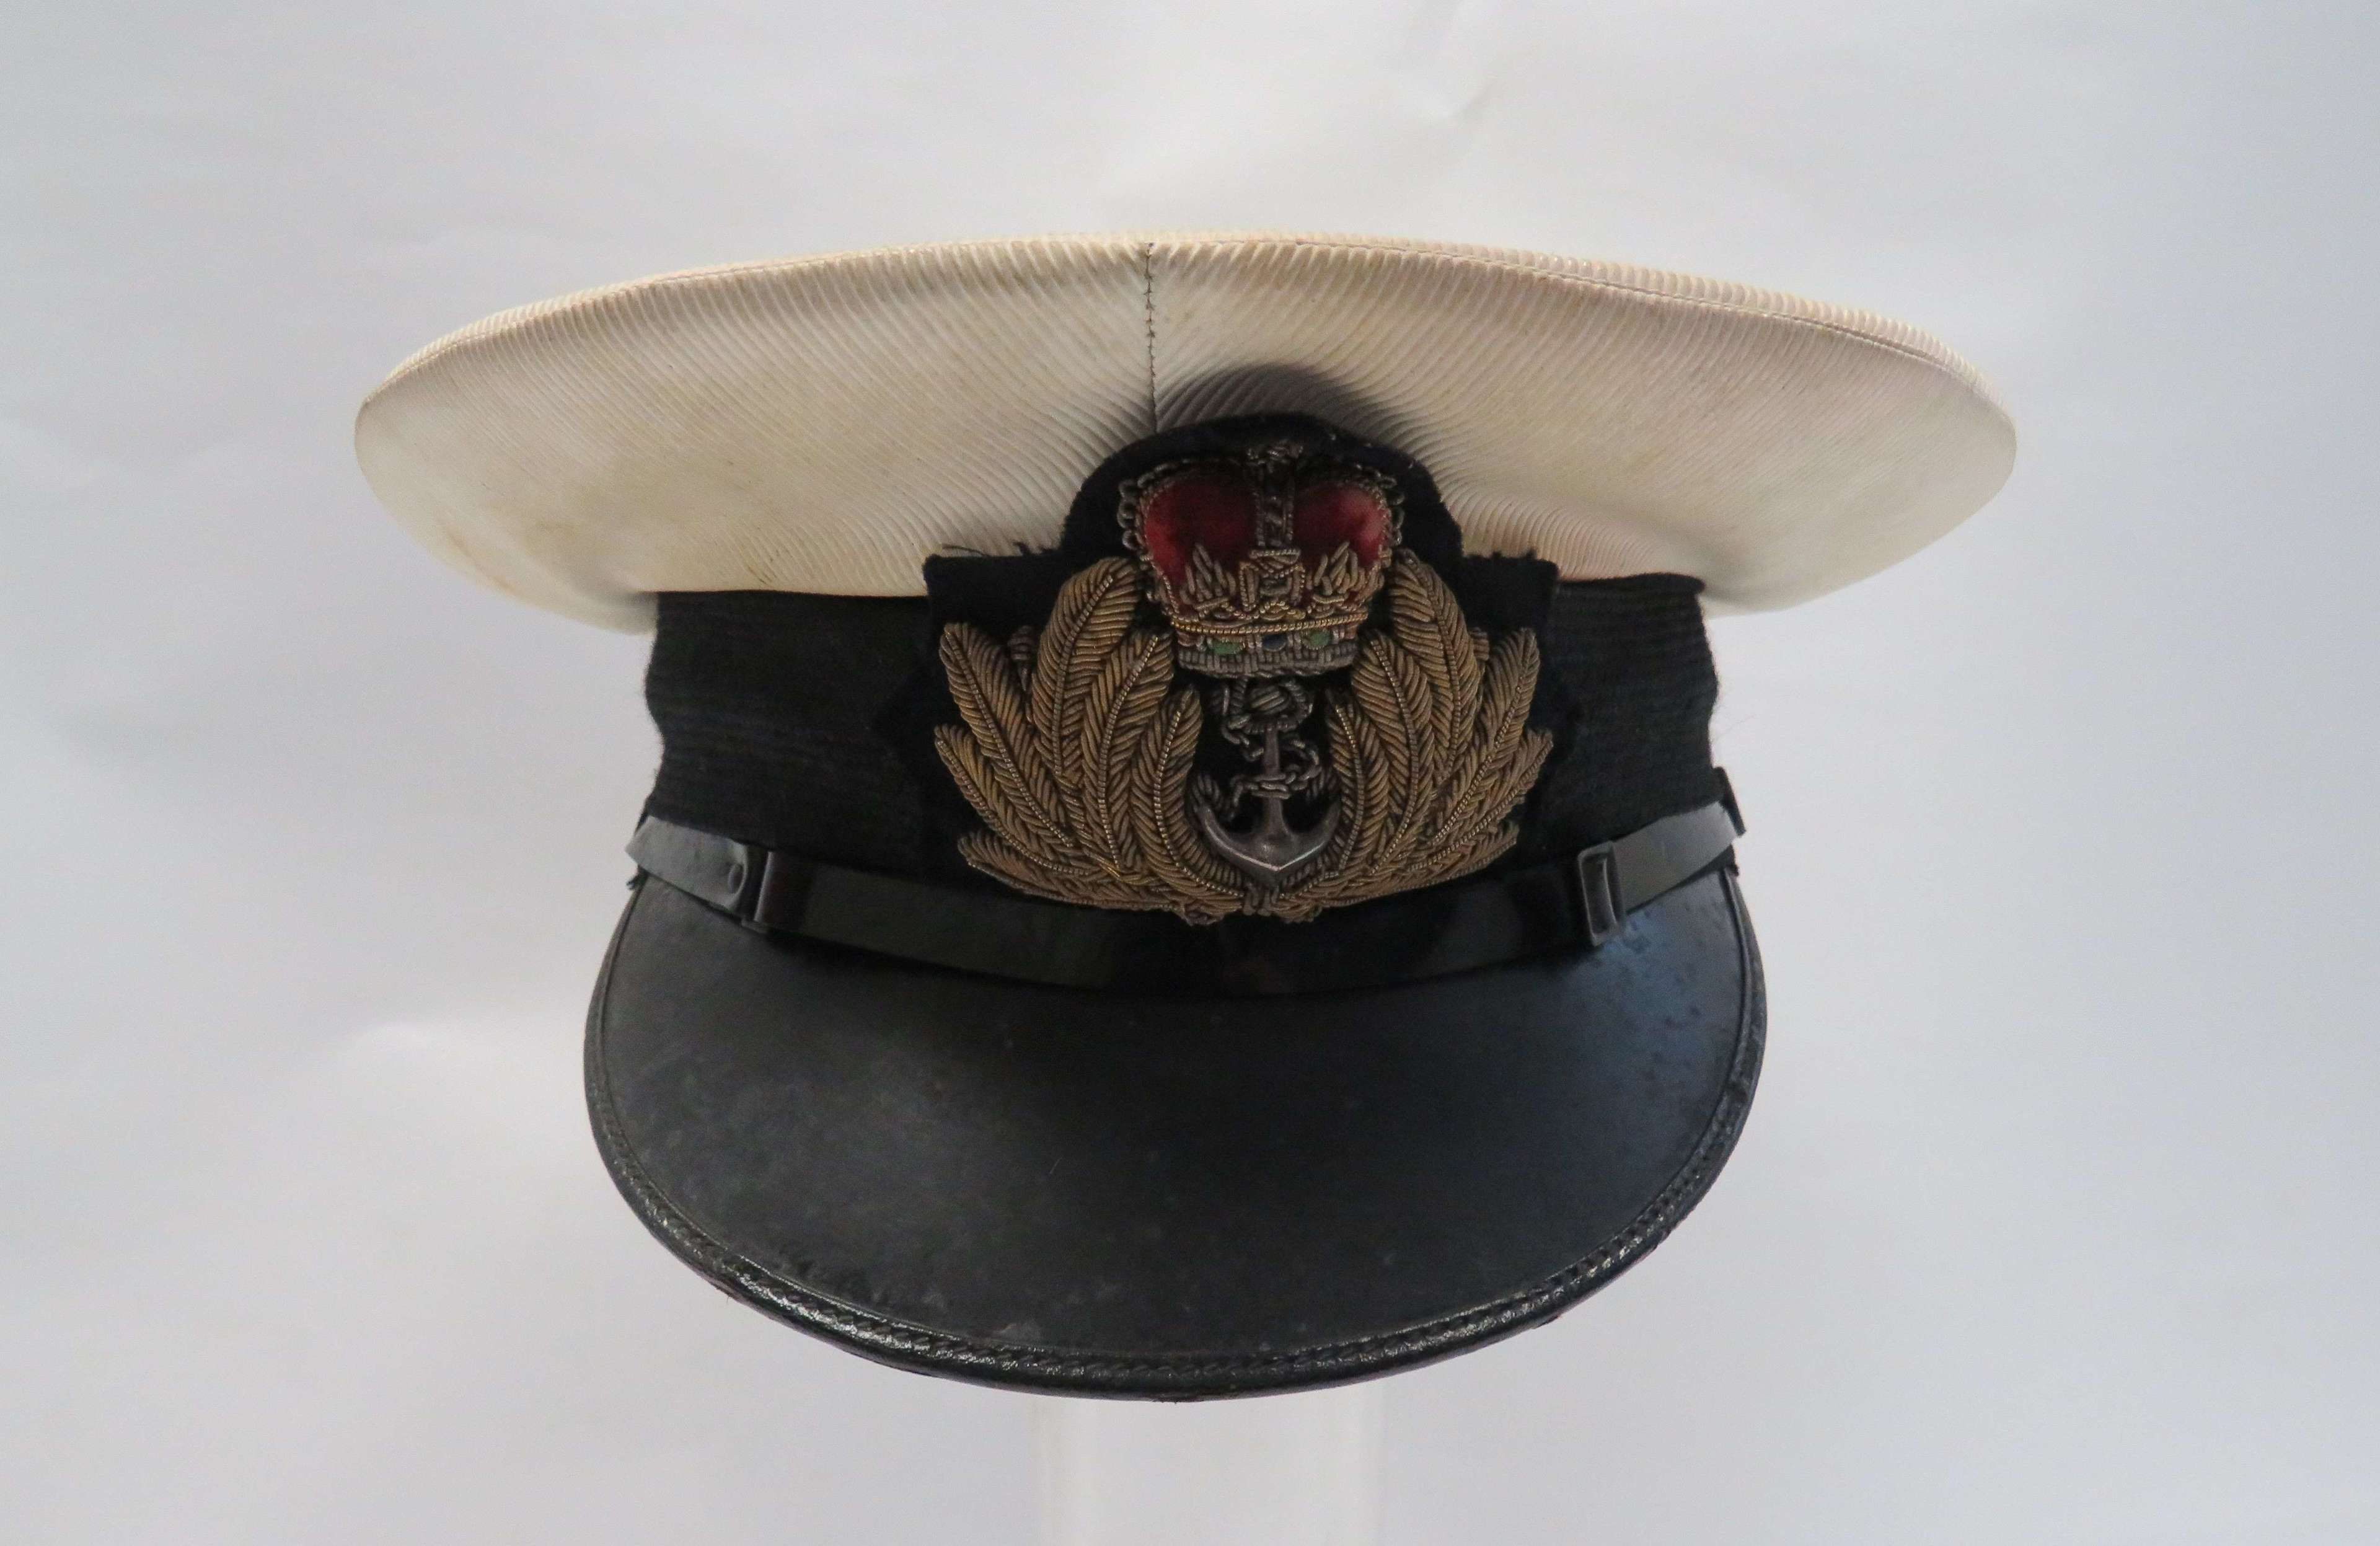 Post 1953 Royal Navy Officers Service Dress Cap